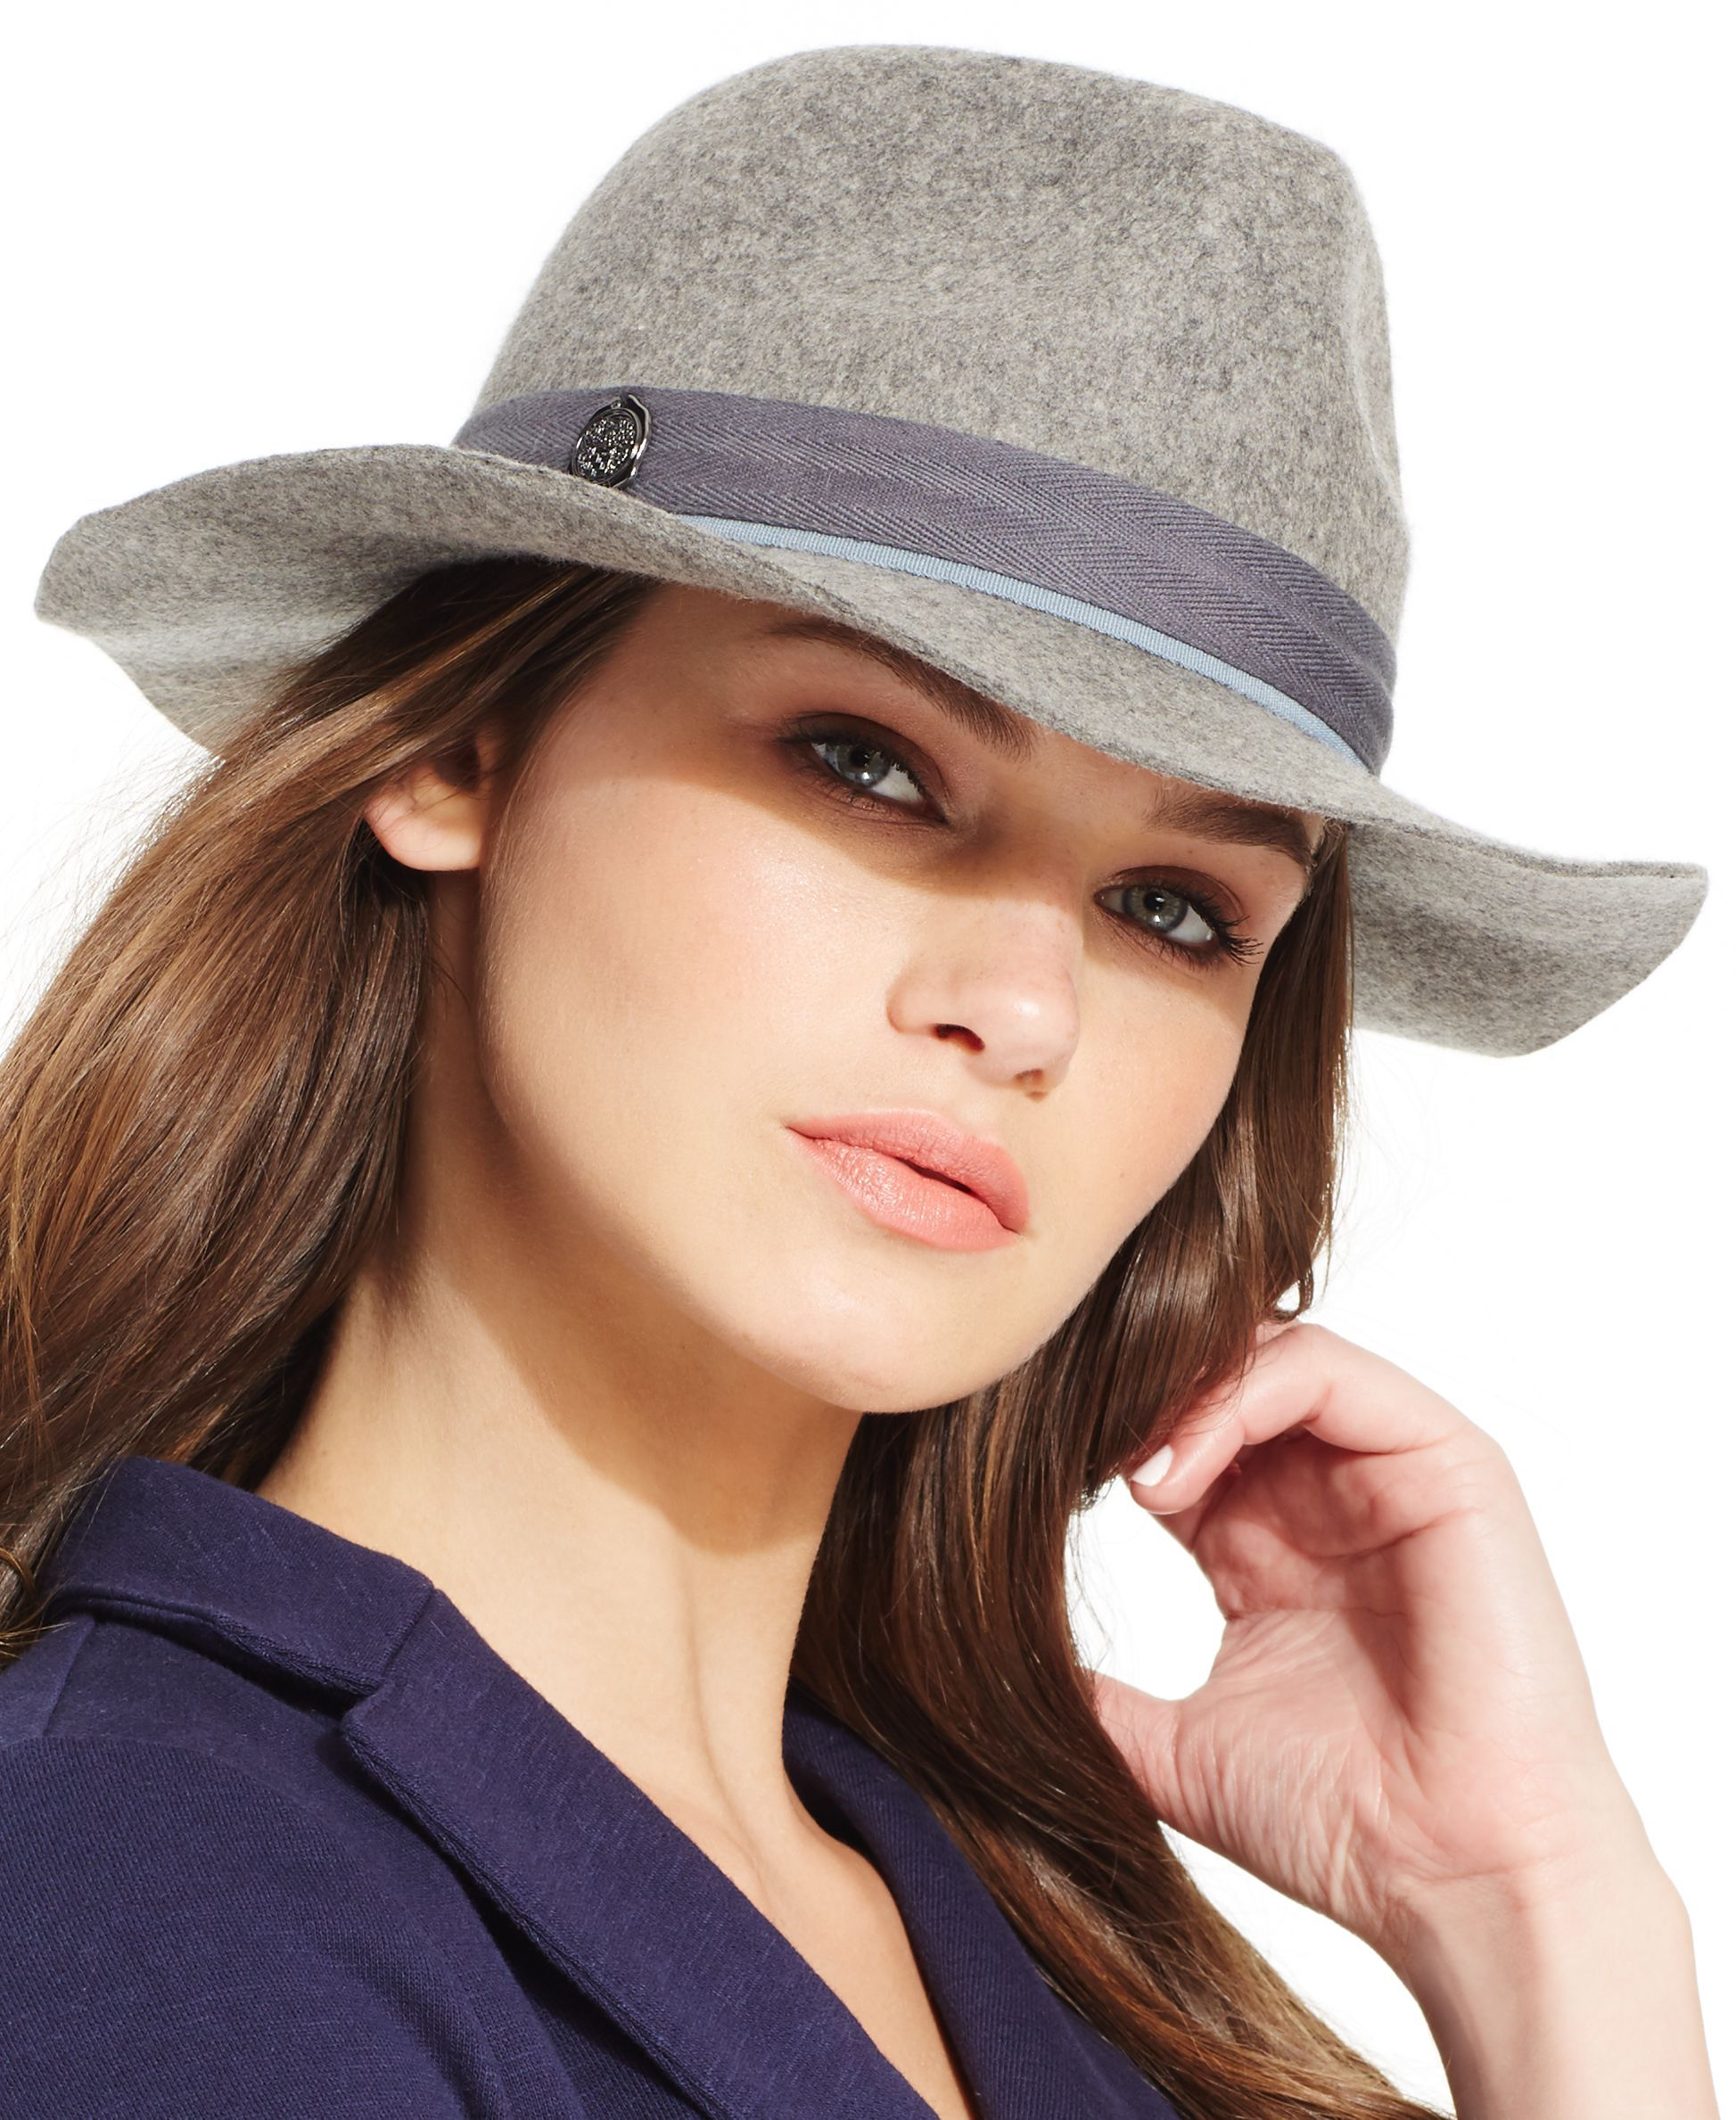 Vince Camuto Banded Travellers Panama Hat  41ed4f818a6b